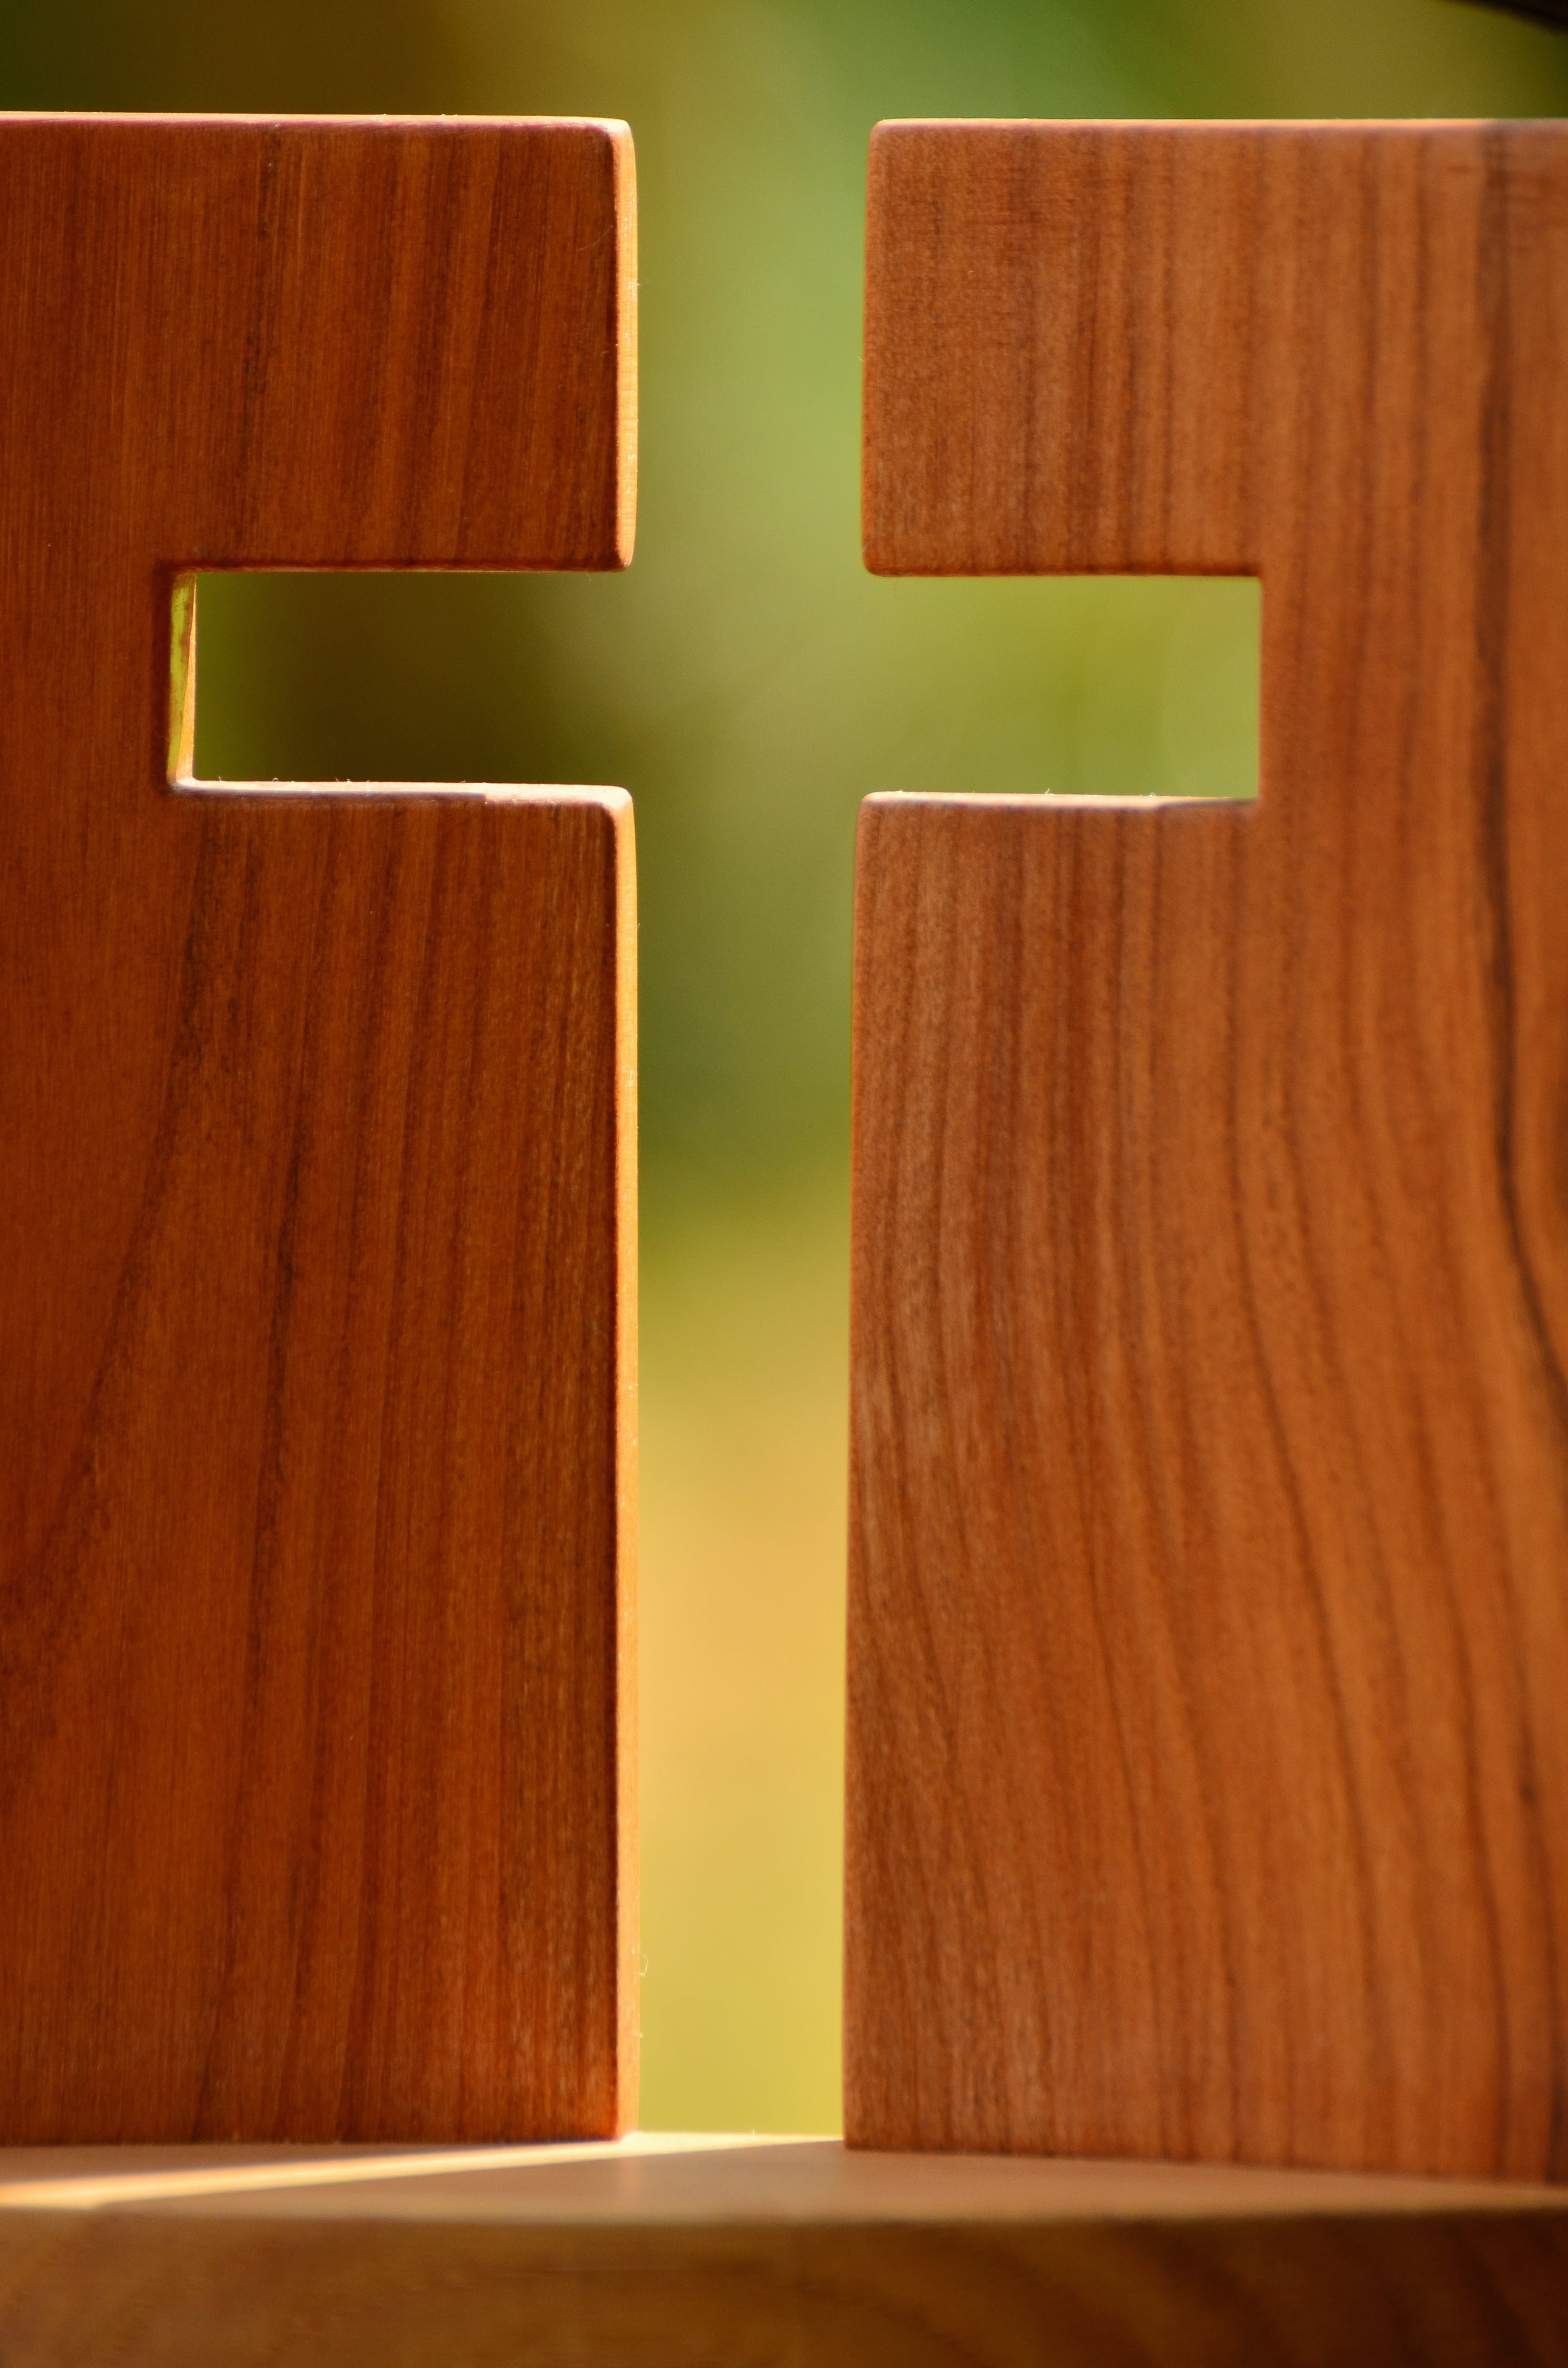 2 Brown Wooden Boards Forming Cross